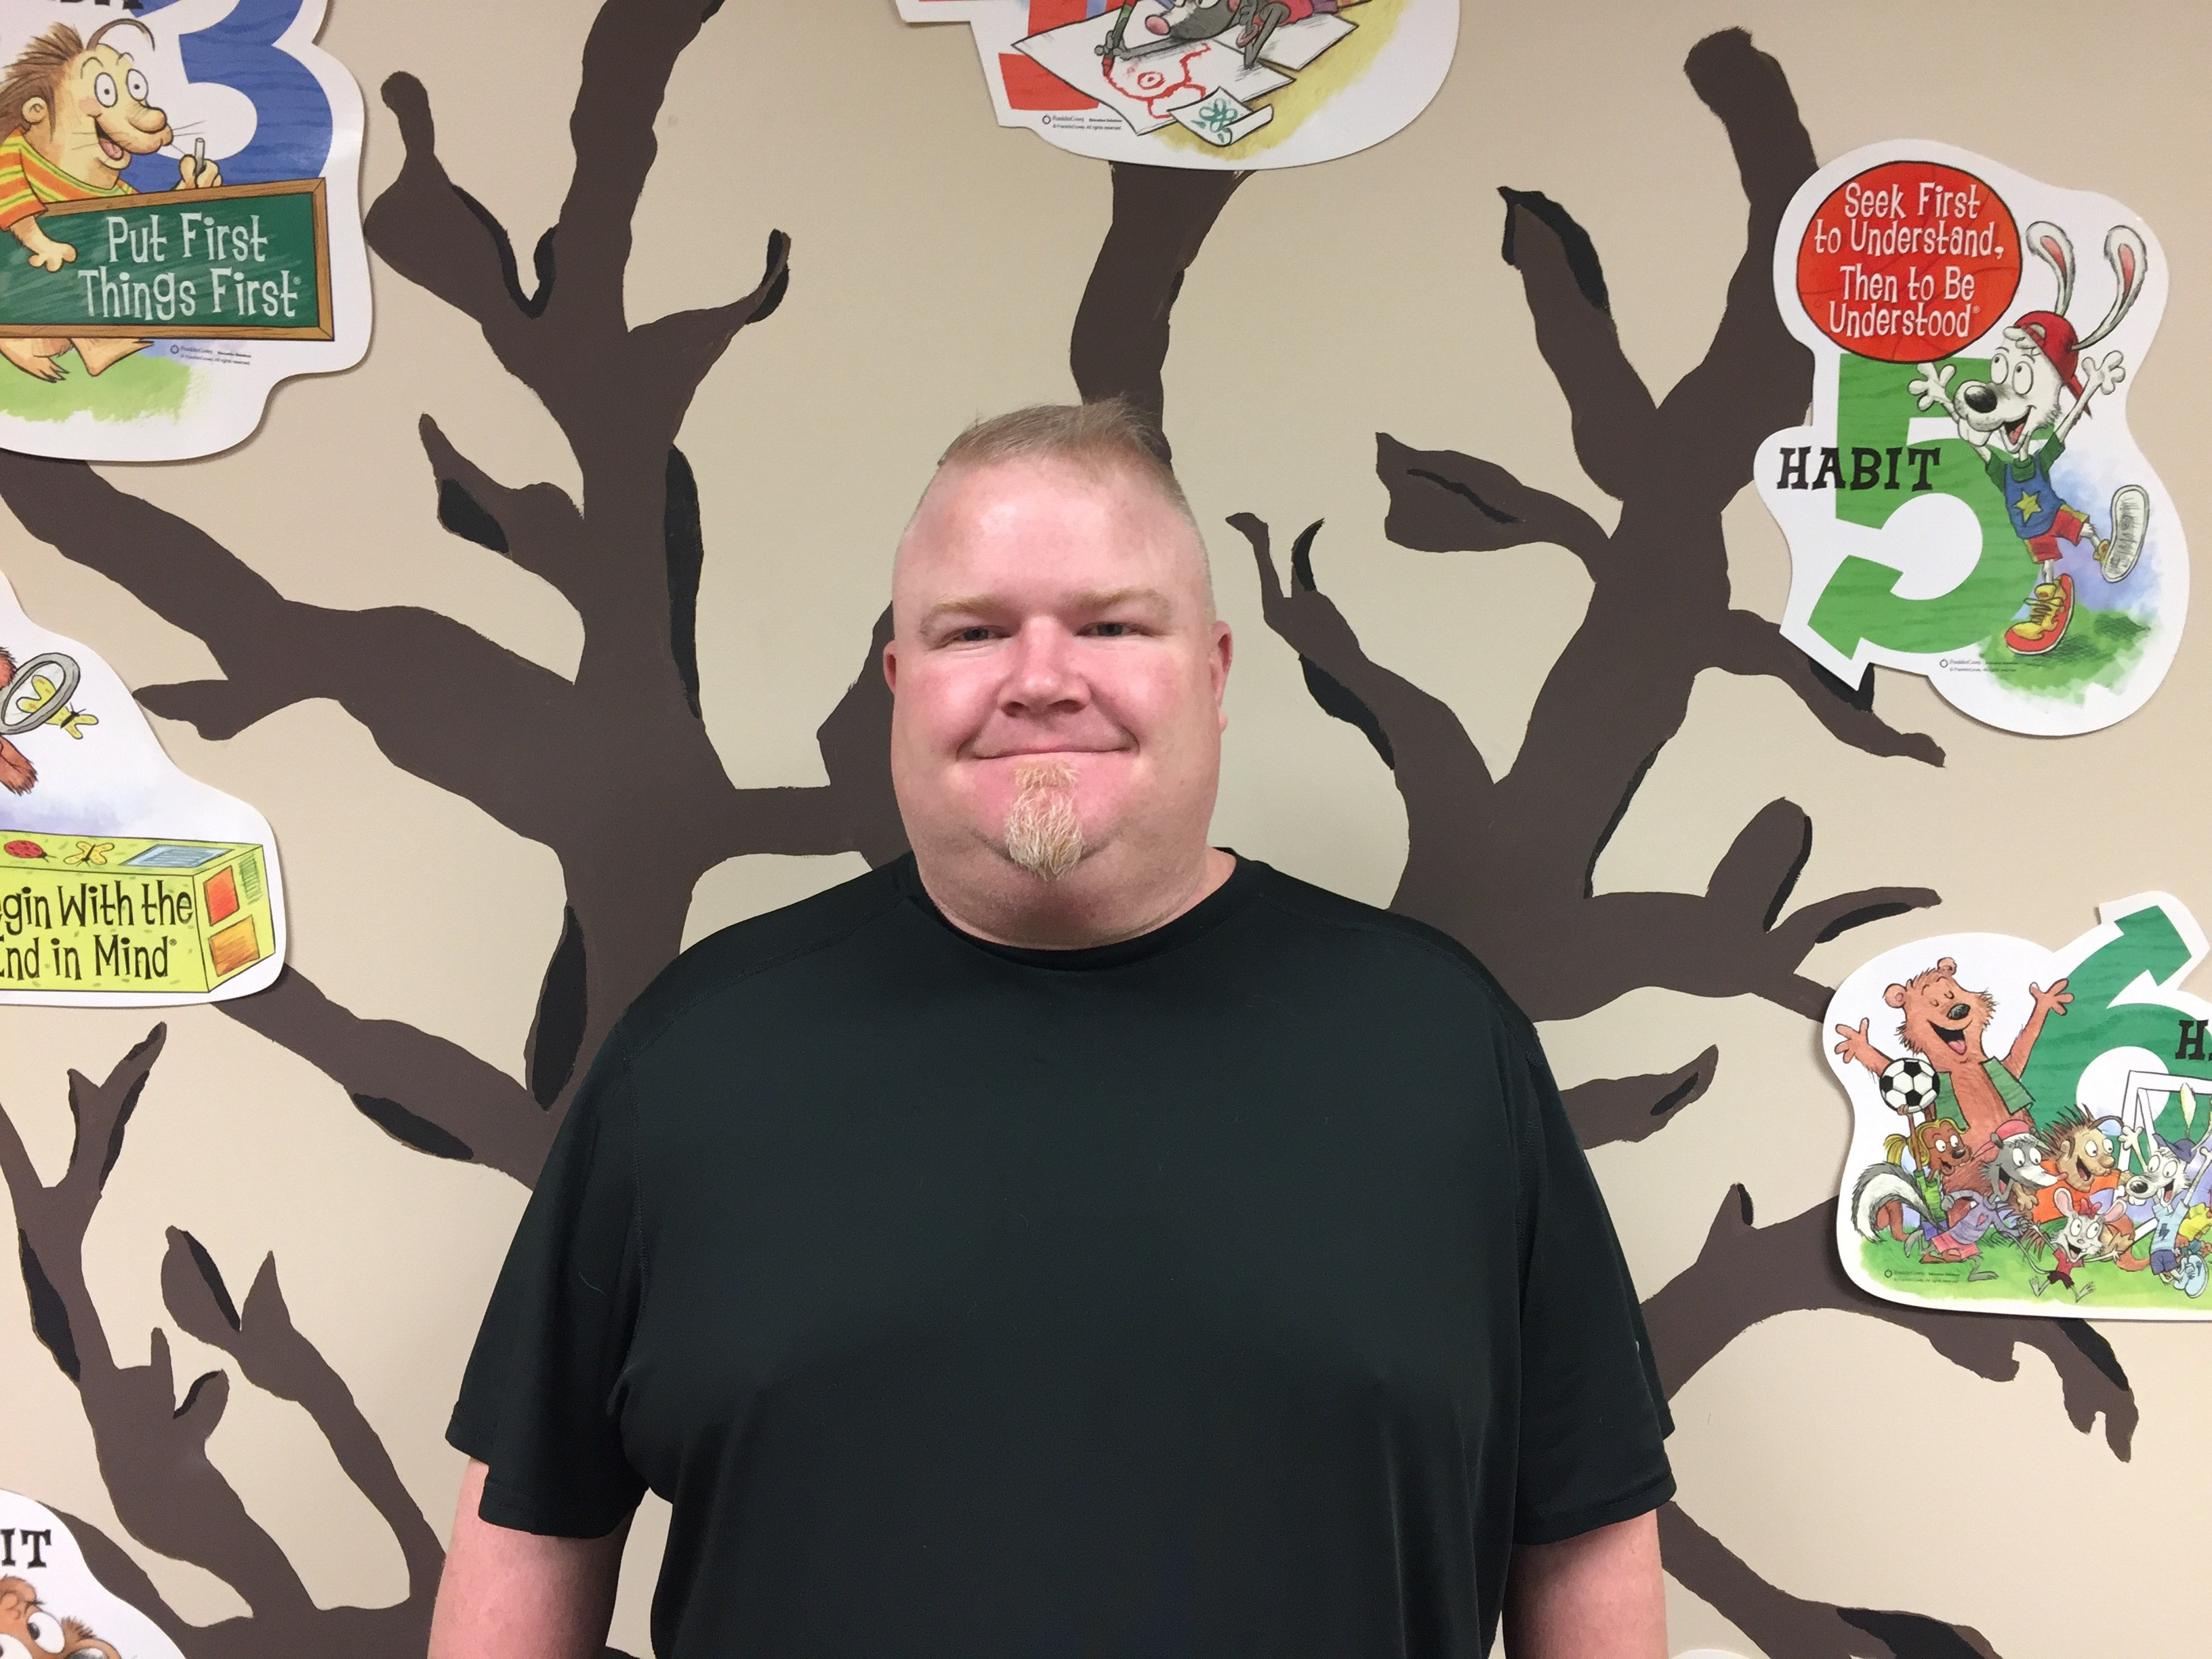 Picture of Mr. Drake, school counselor at Toll Gate Elementary